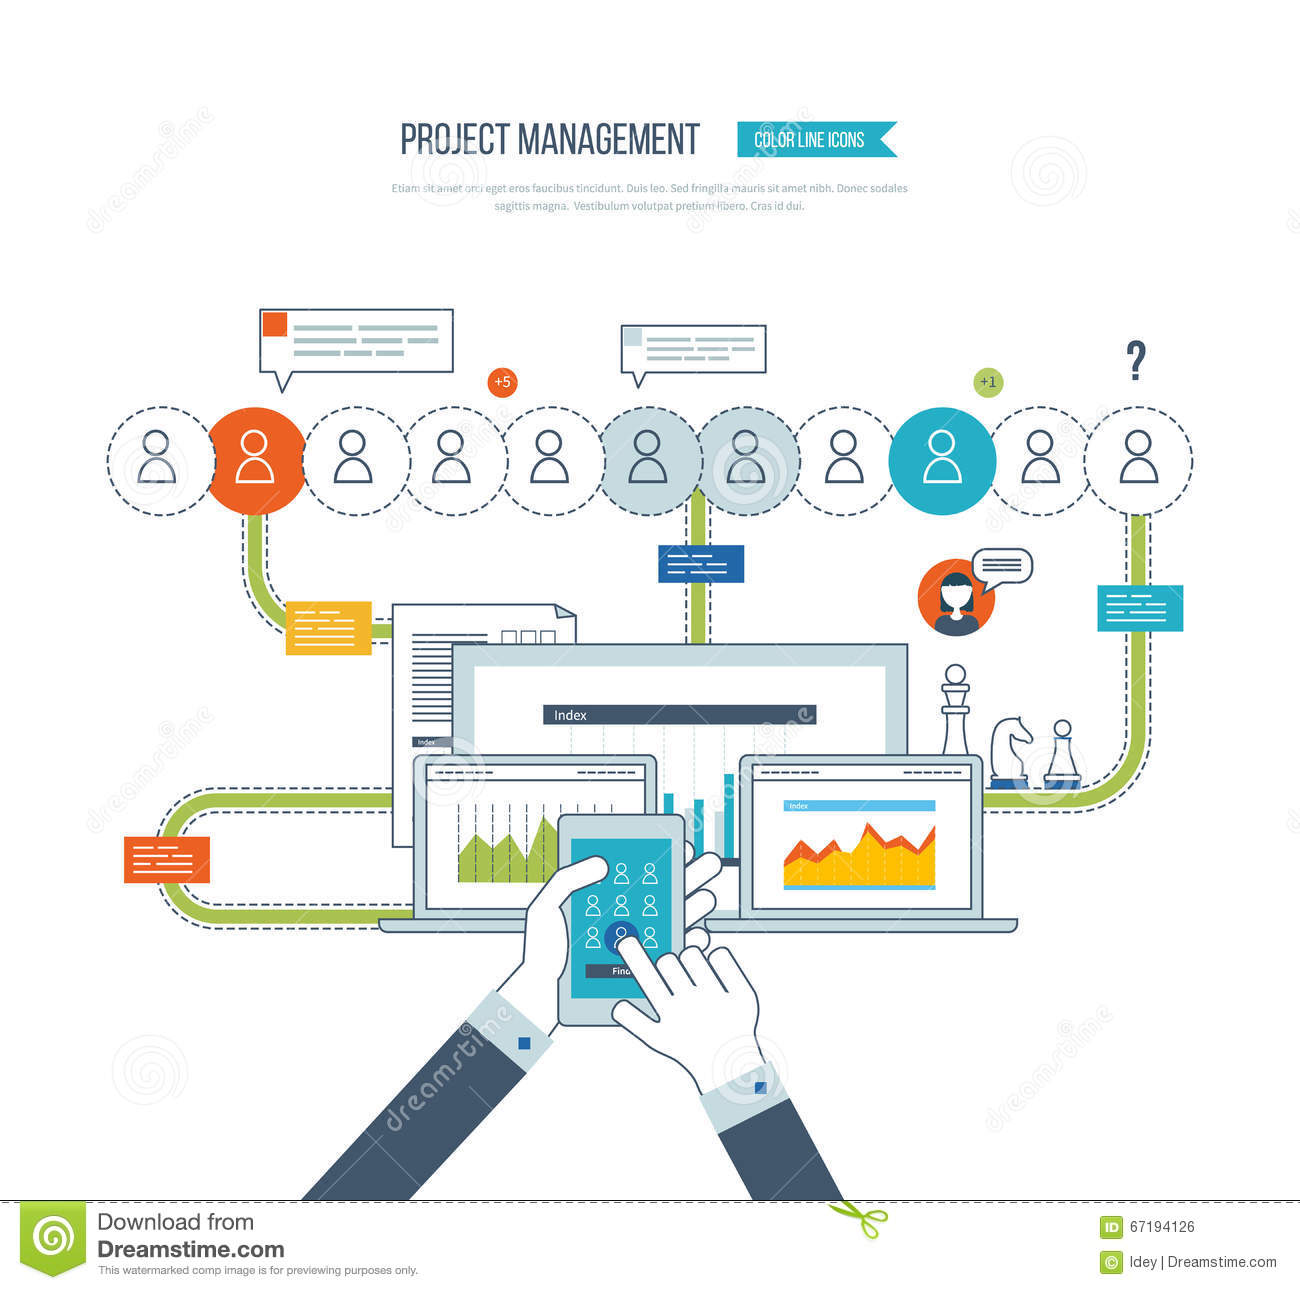 Project management consultancy business plan